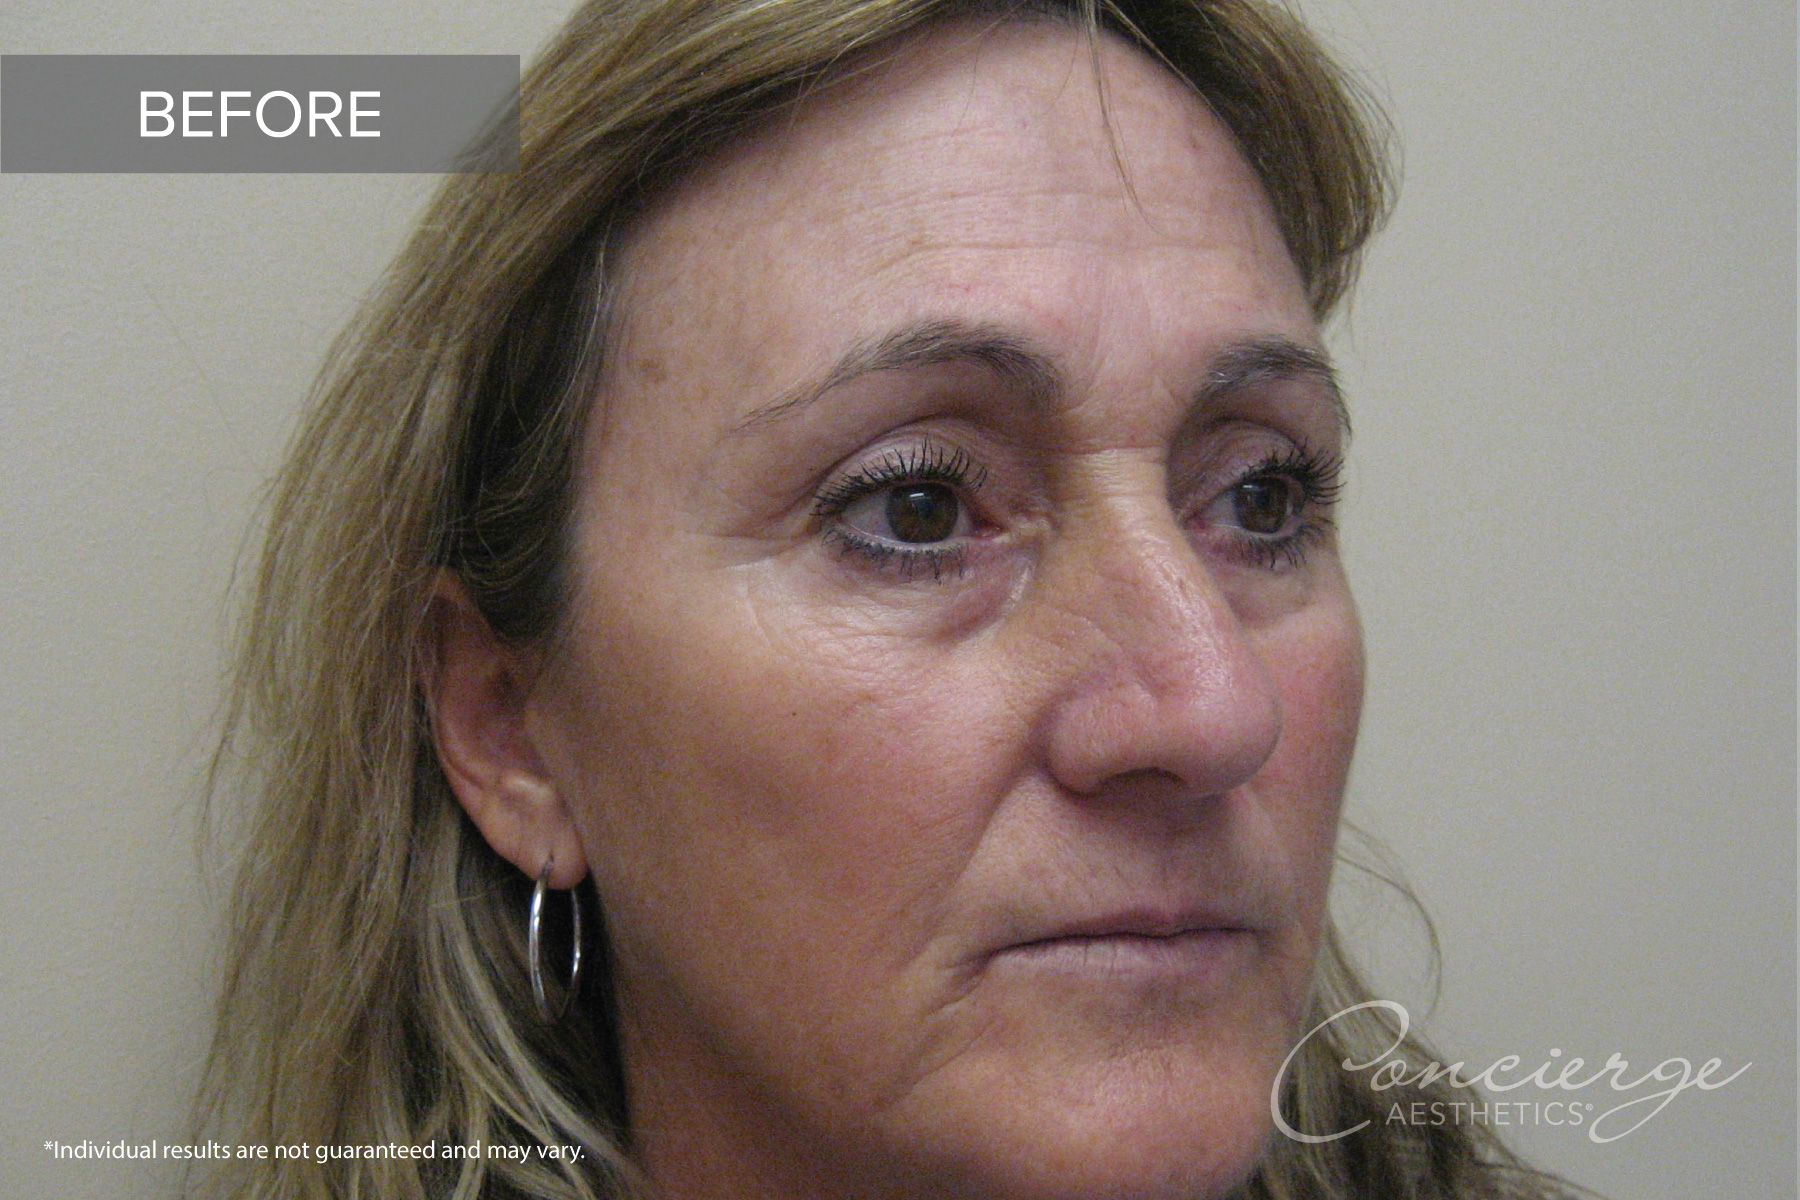 Before and After - Juvederm | Concierge Aesthetics, Irvine